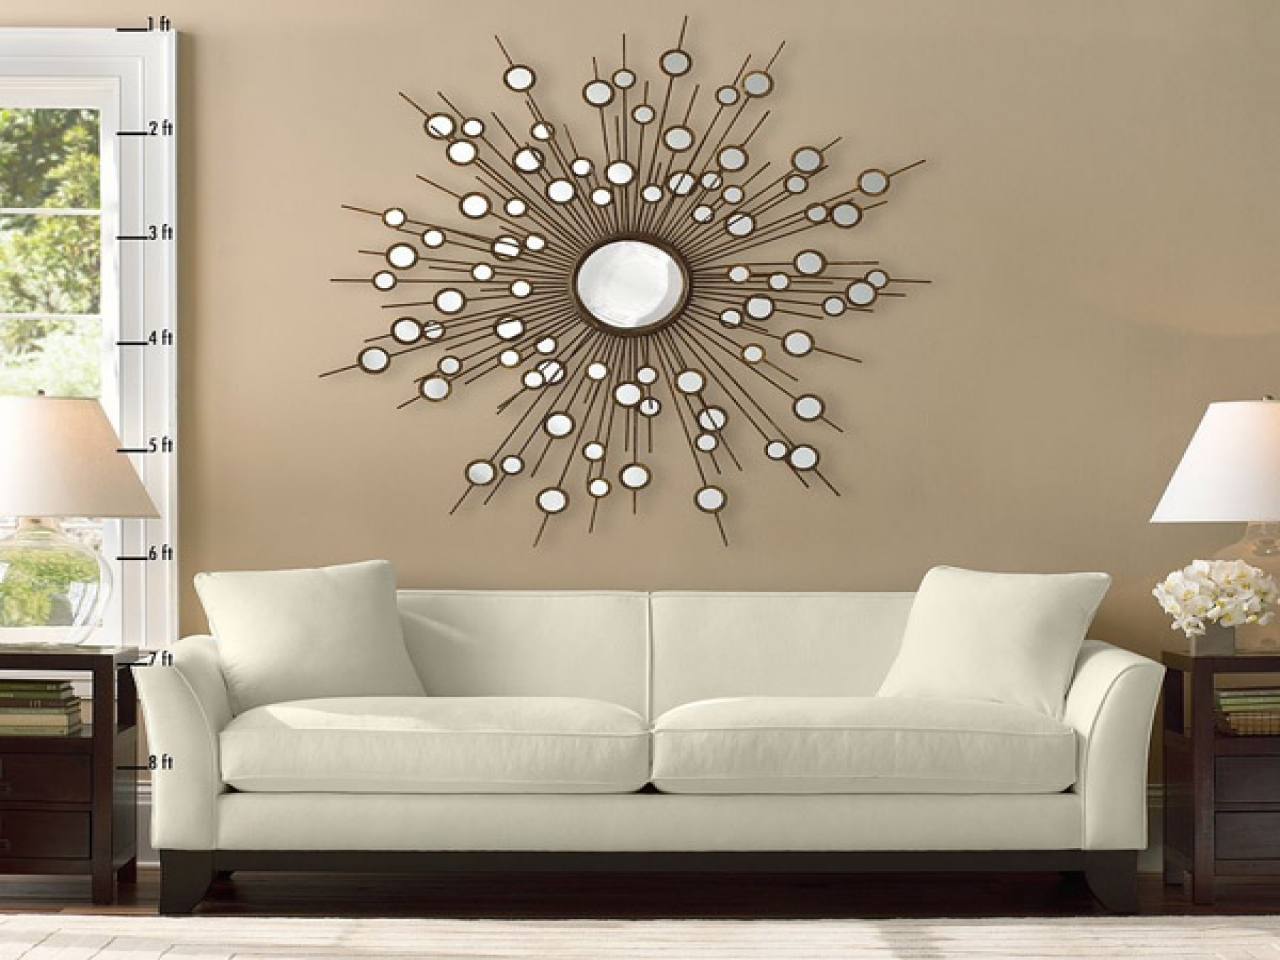 Permalink to Mirrored Wall Decor Ideas